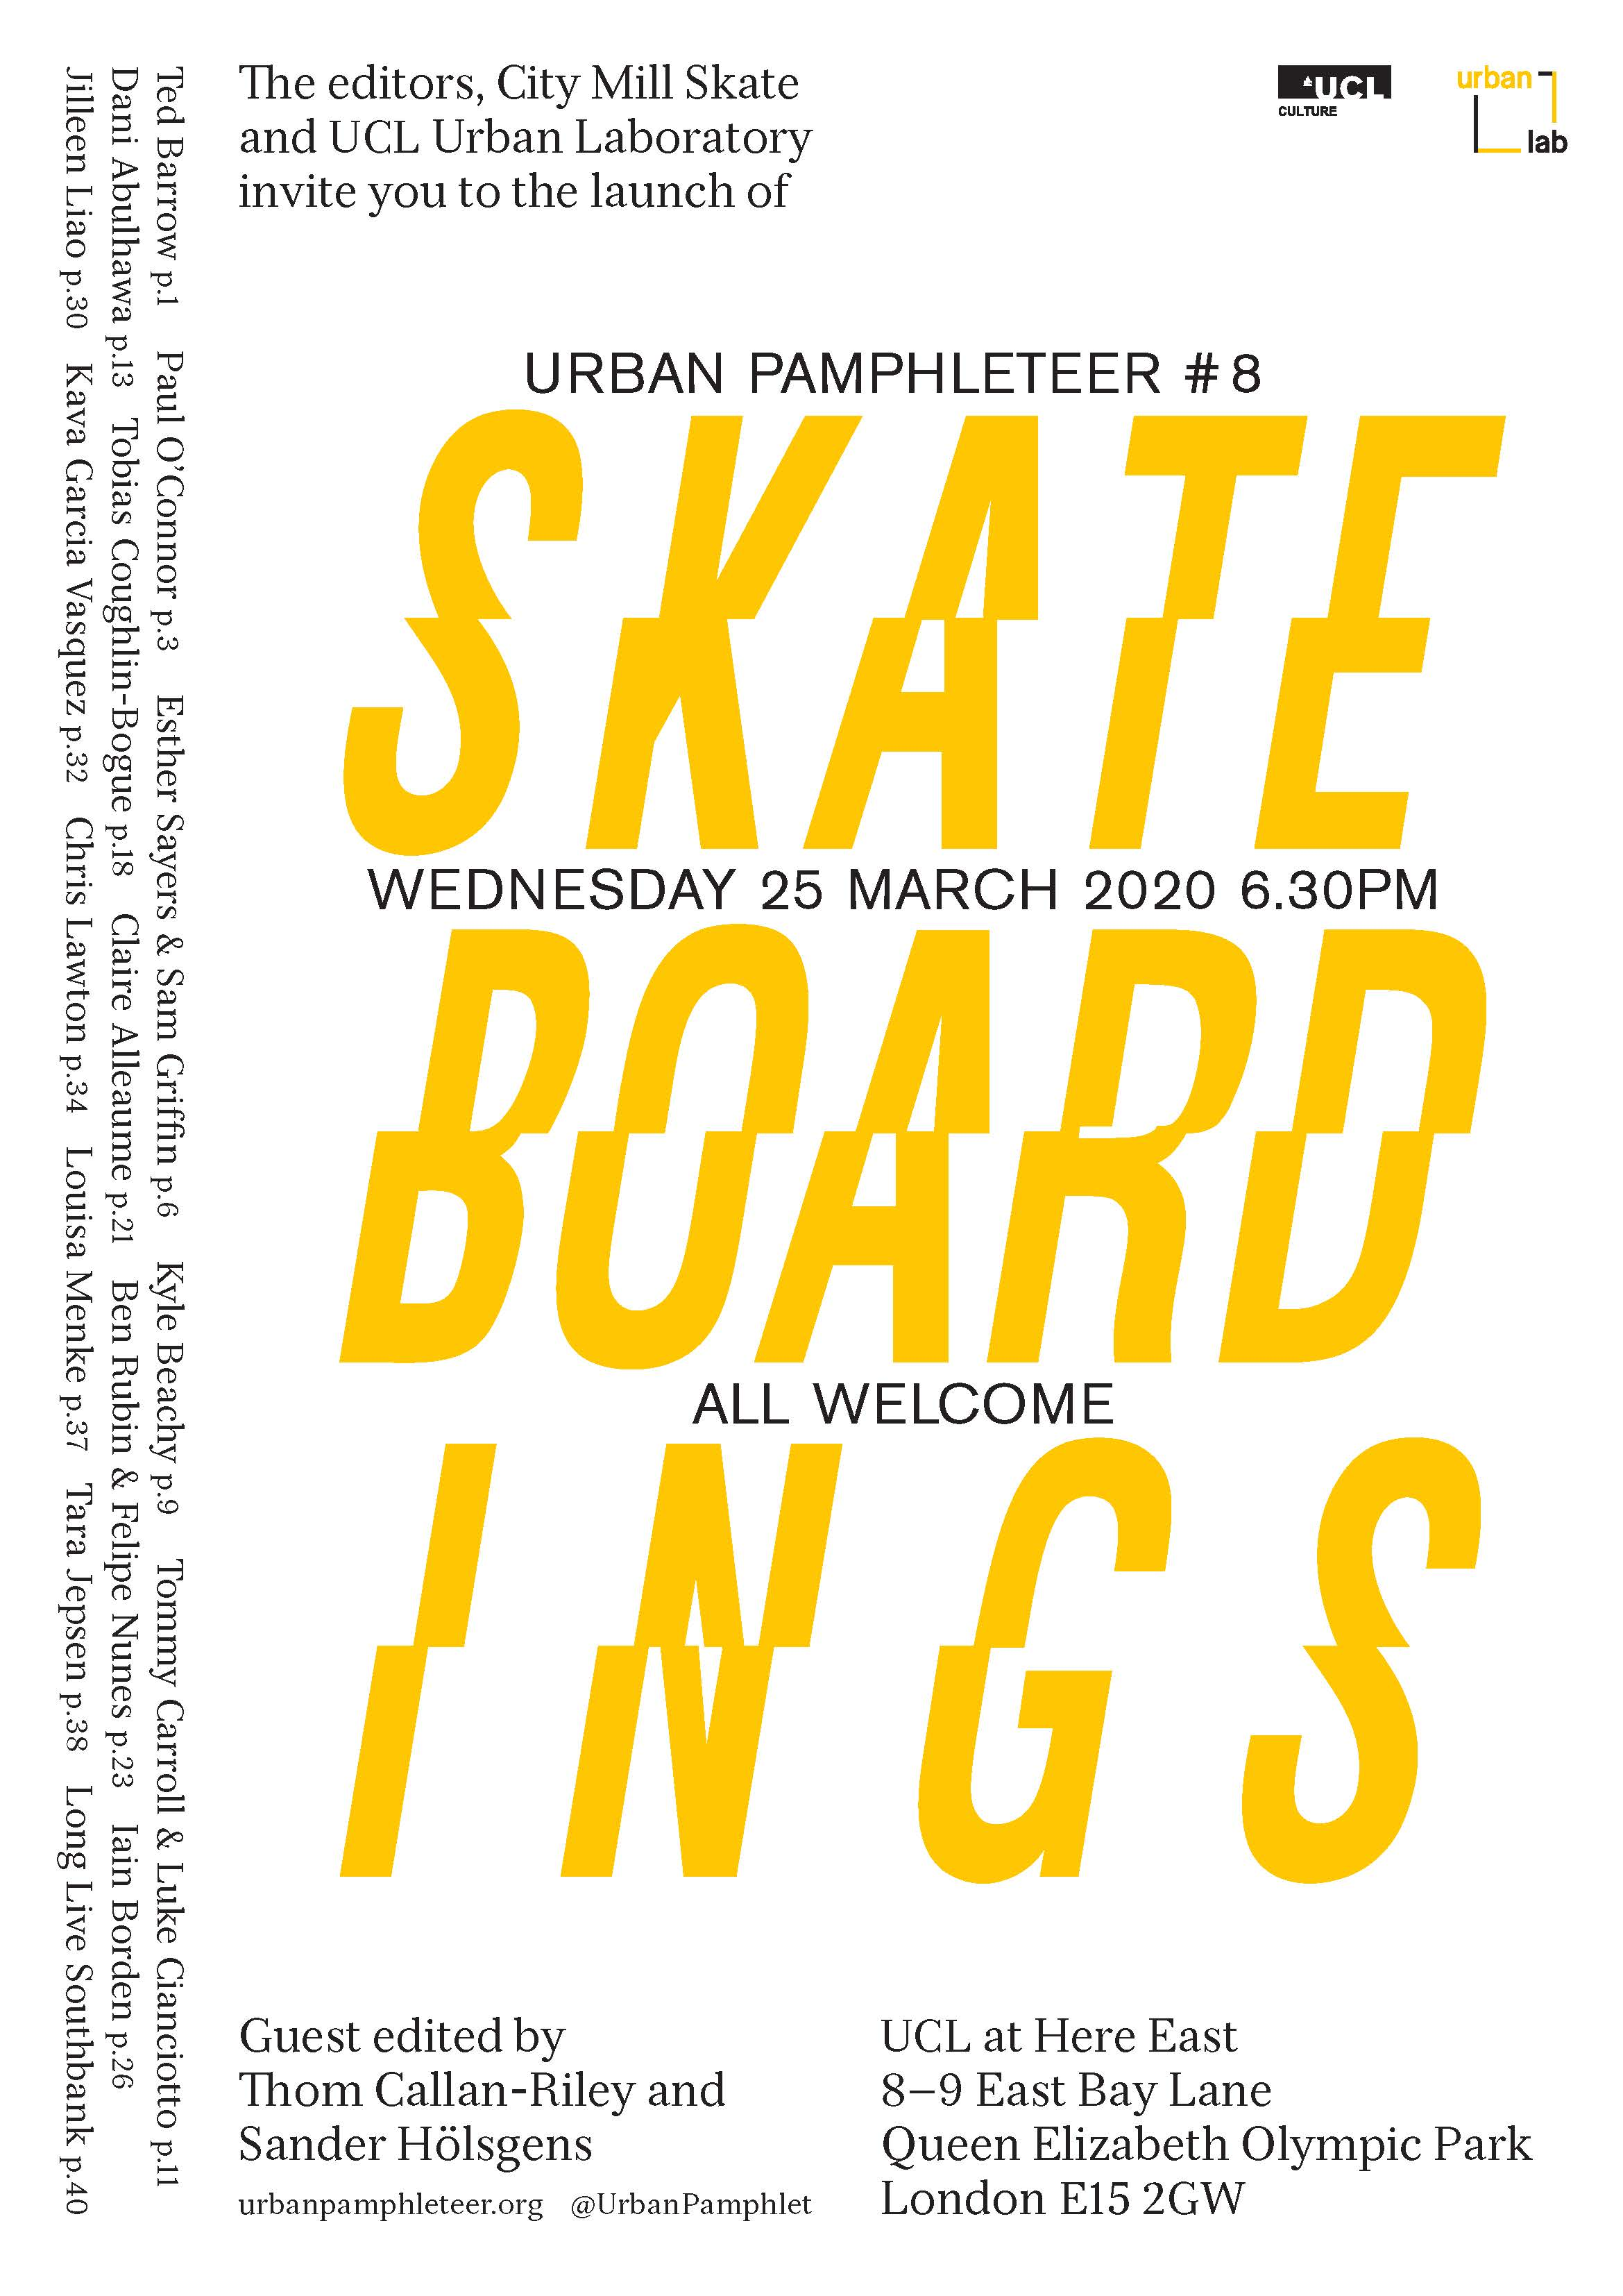 *POSTPONED* Urban Pamphleteer #8 launch: Skateboardings